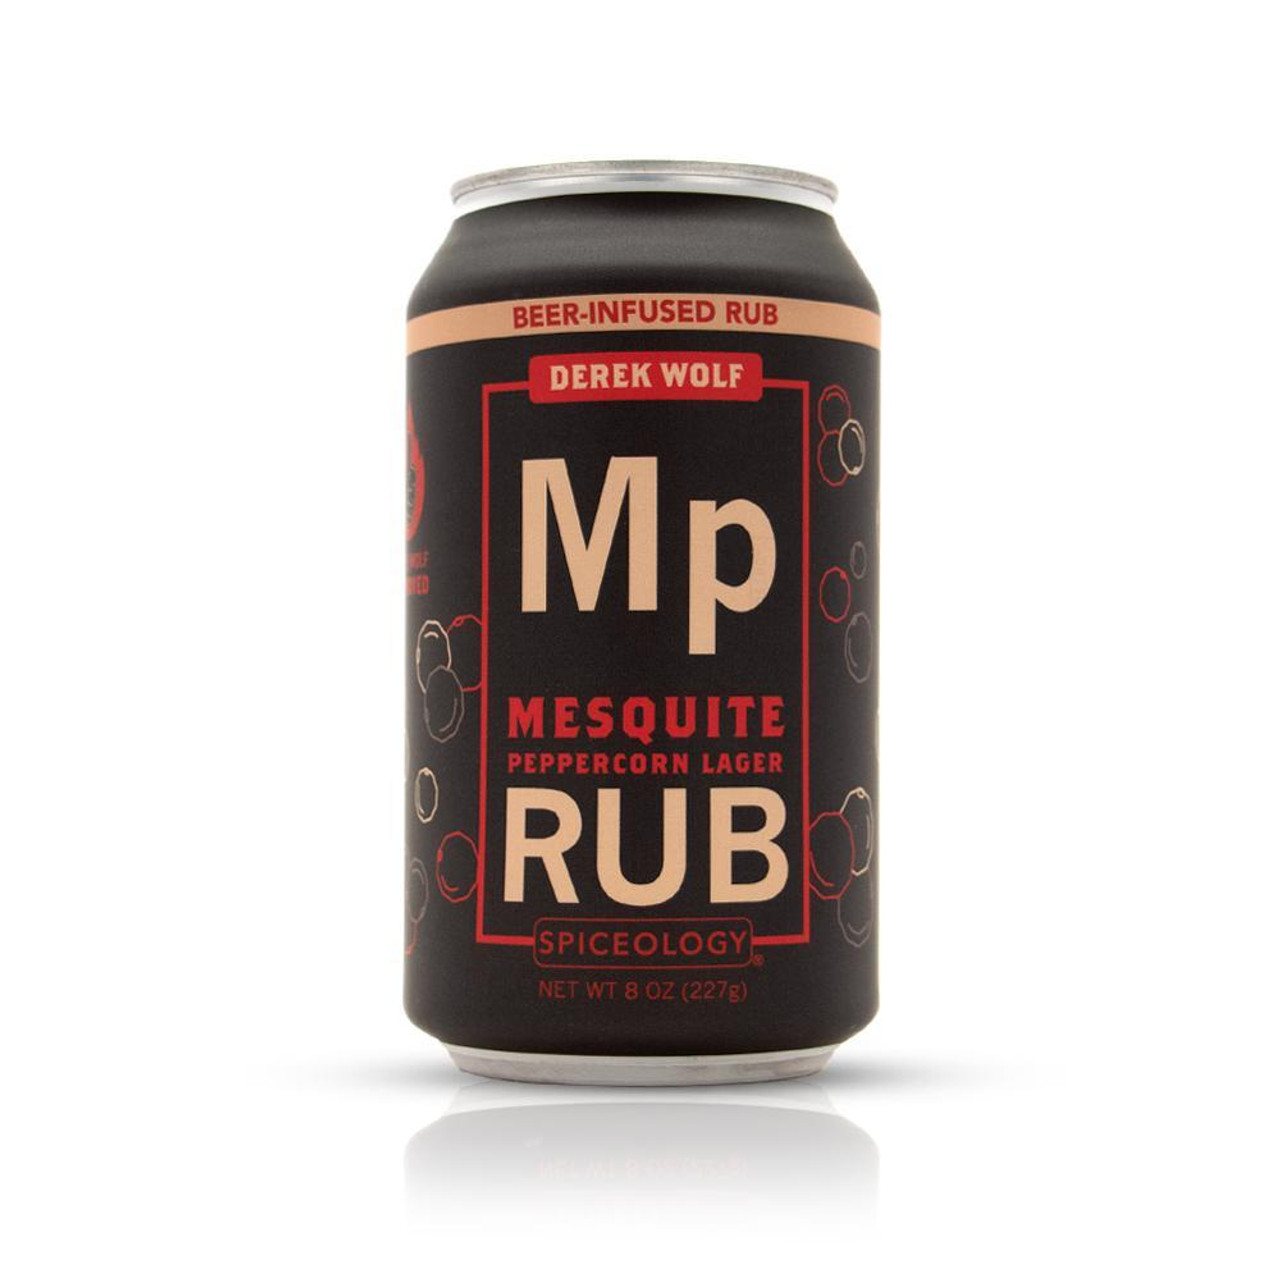 SPICEOLOGY BEER INFUSED RUB - MESQUITE PEPPERCORN LAGER RUB